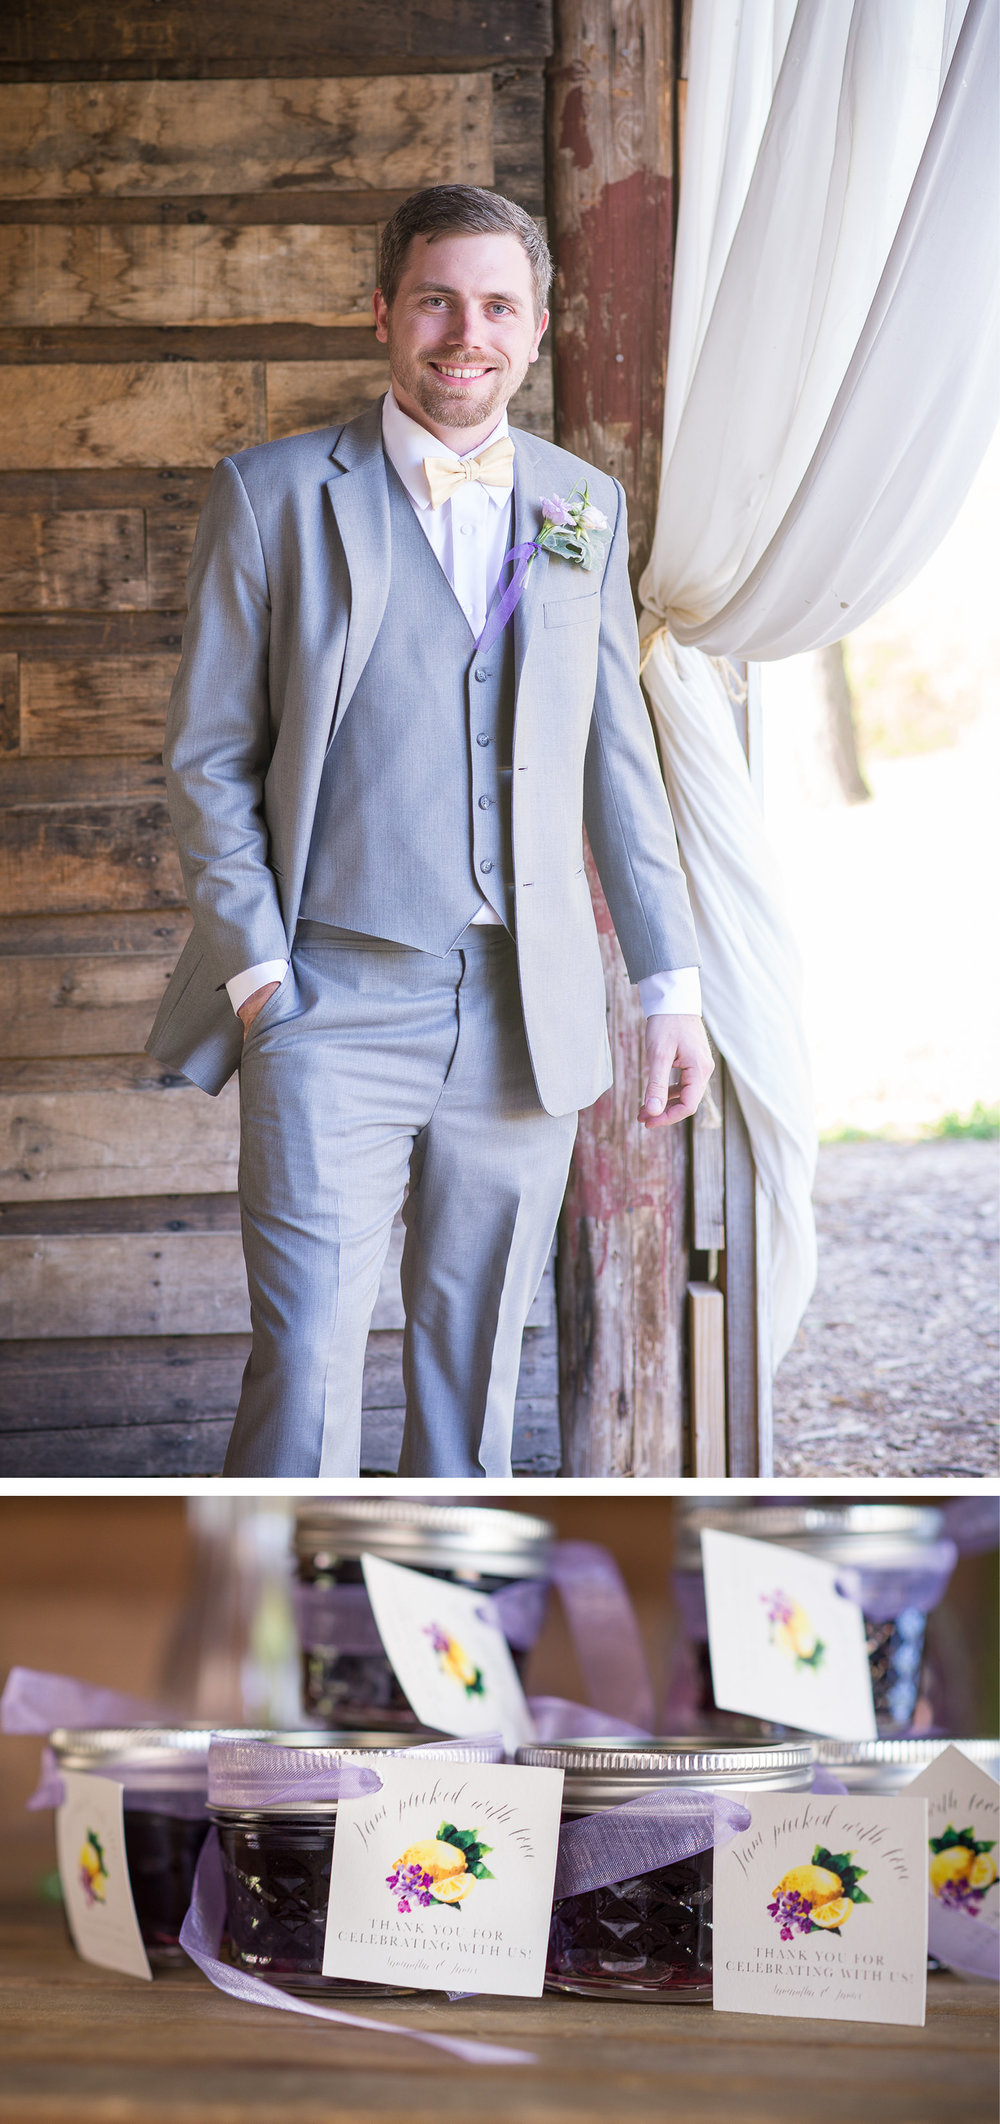 Charlotte-Wedding-Stationer-Lemon-and-Lavender-Styled-Shoot-Magnificent-Moments-Cami-Ann5.jpg